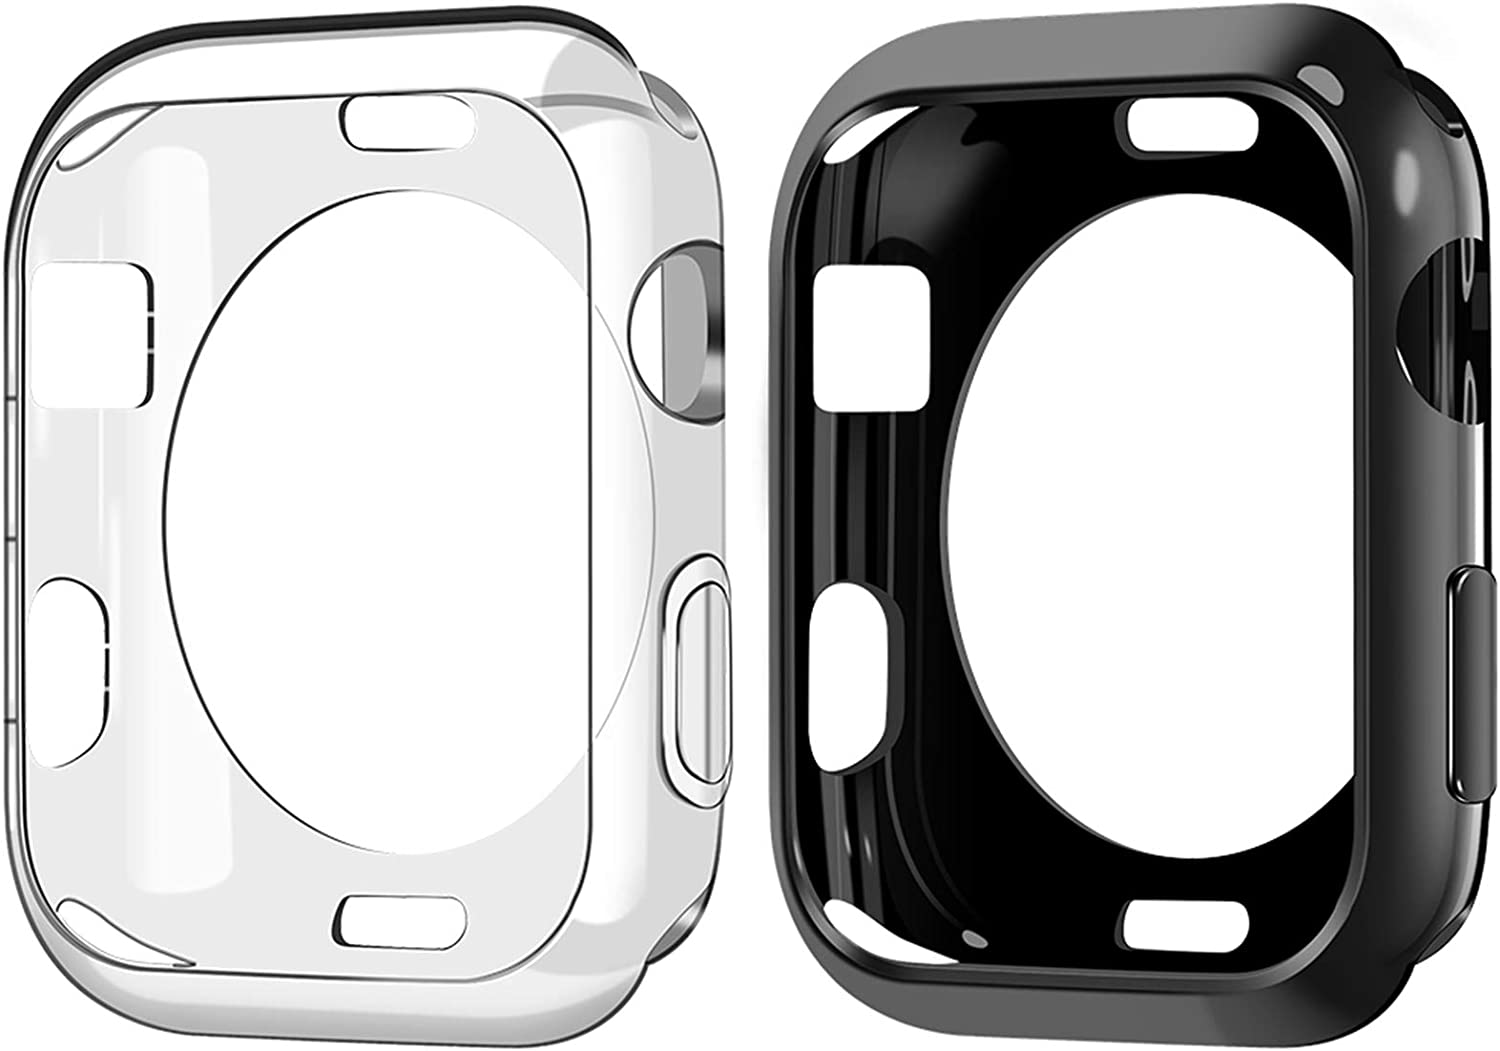 Goton Compatible iWatch Apple Watch Case 38mm Series 3 2 1, (2 Packs) Soft TPU Shockproof Case Cover Bumper Protector (Black and Clear, 38mm)